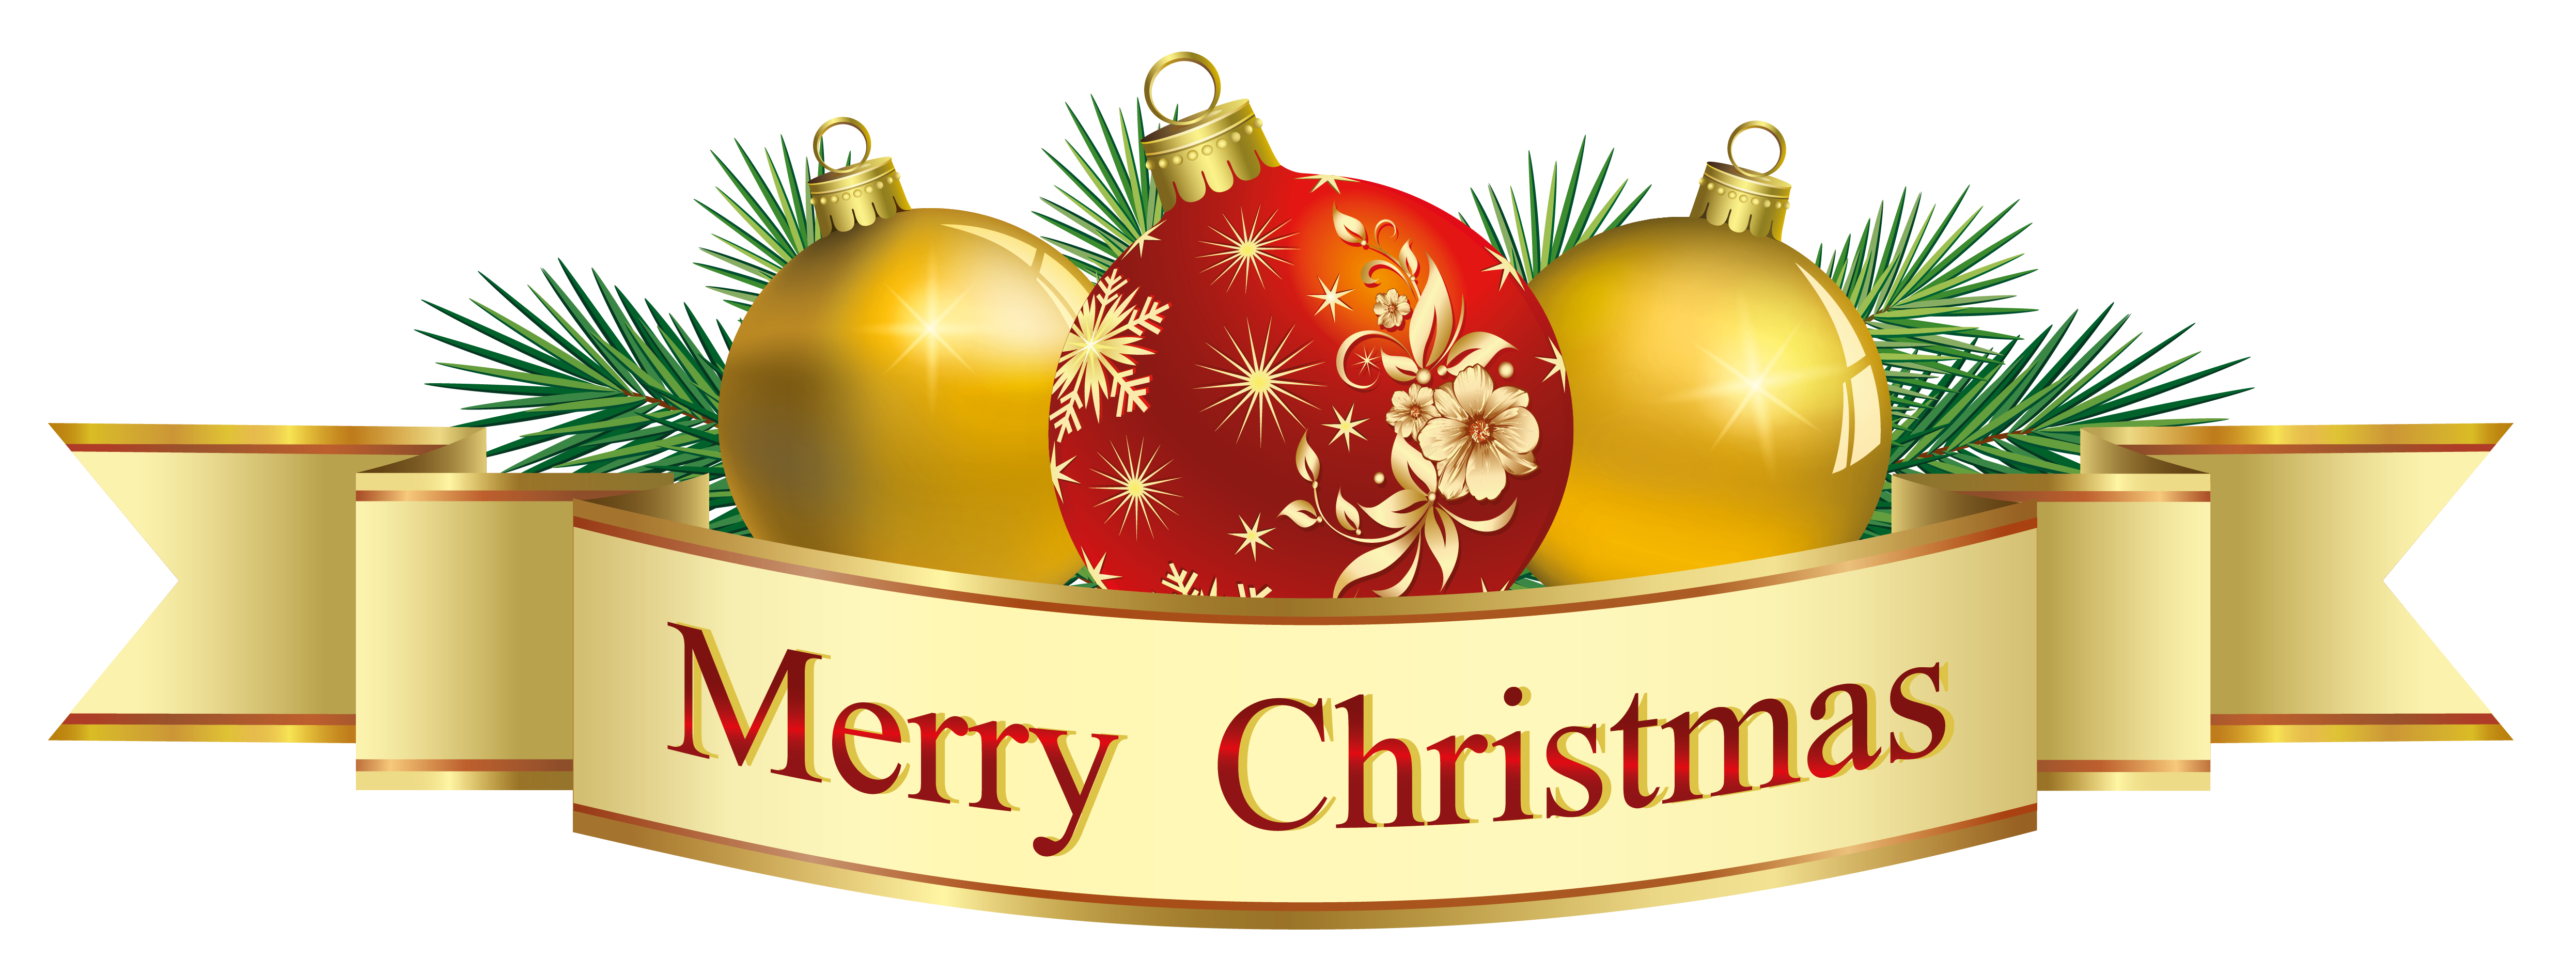 Transparent merry christmas deco clipart gallery yopriceville transparent merry christmas deco clipart gallery yopriceville high quality images and transparent kristyandbryce Image collections